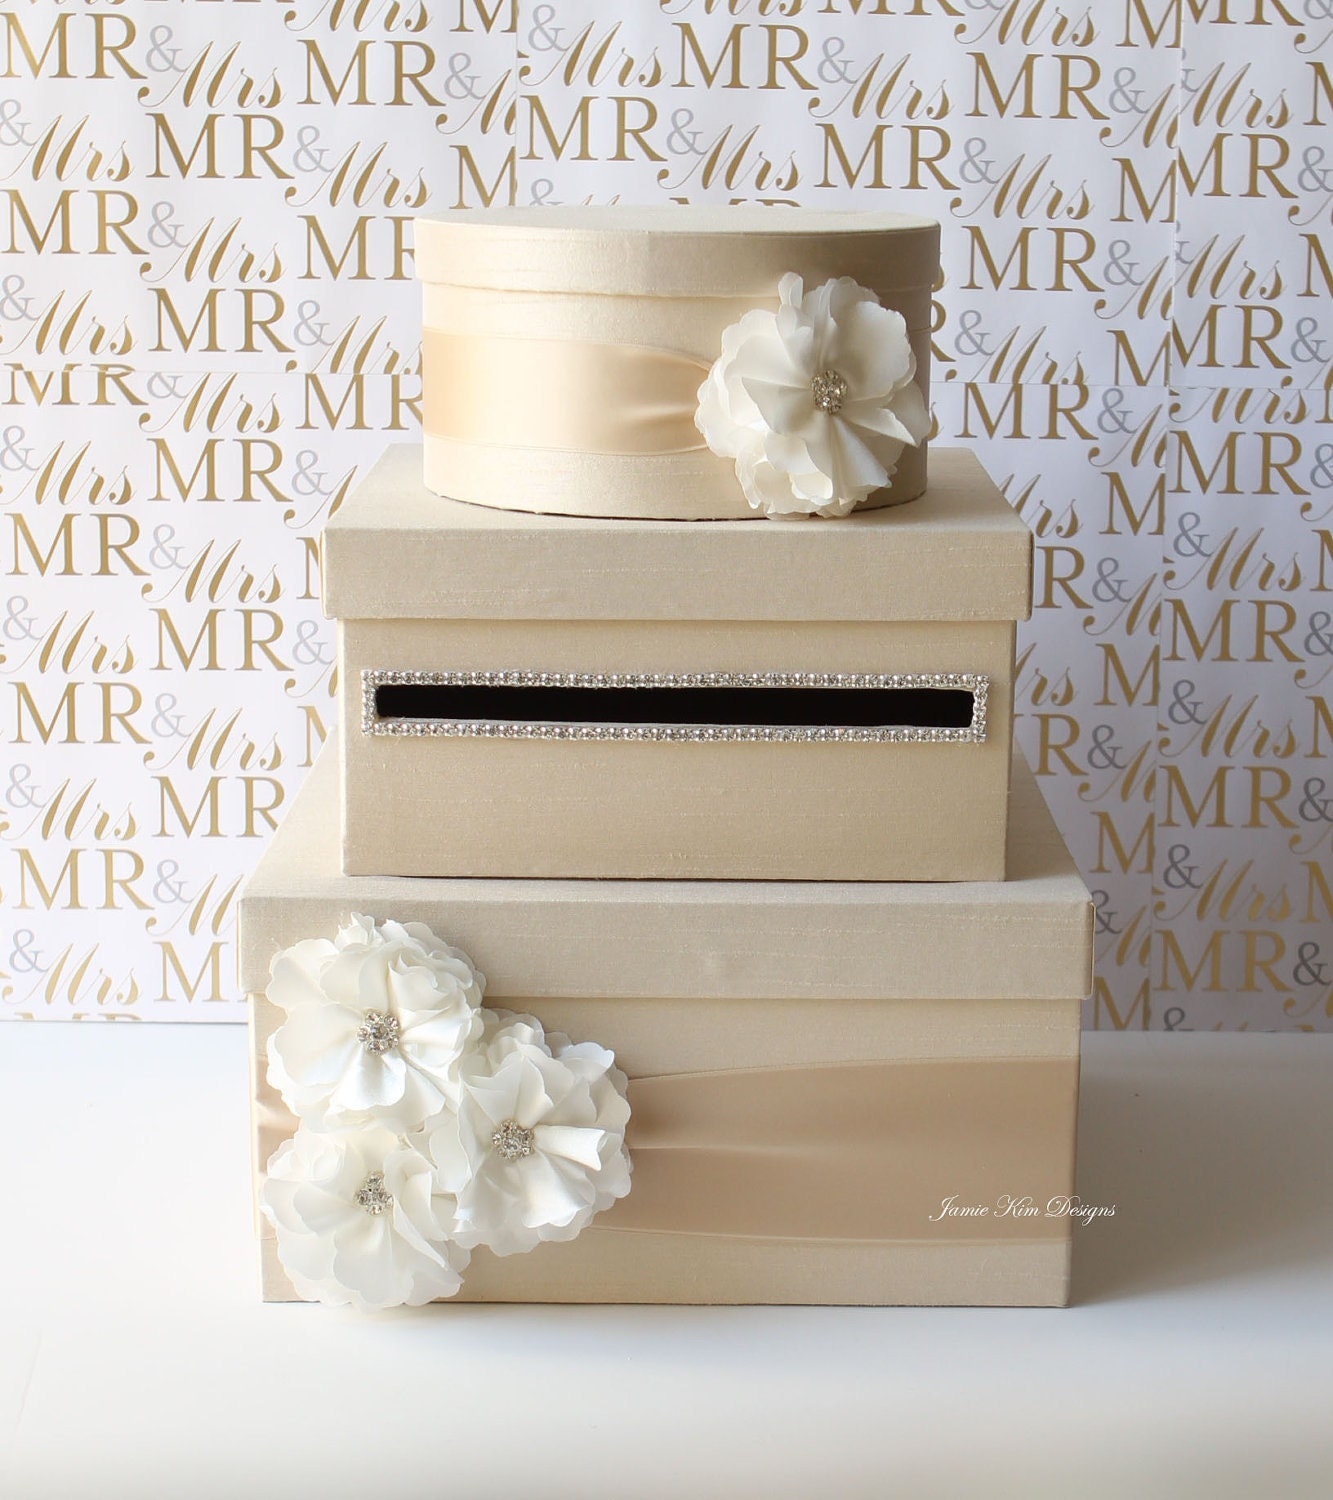 Gift Boxes For Weddings: Wedding Card Box Money Box Gift Card Holder Custom Made To